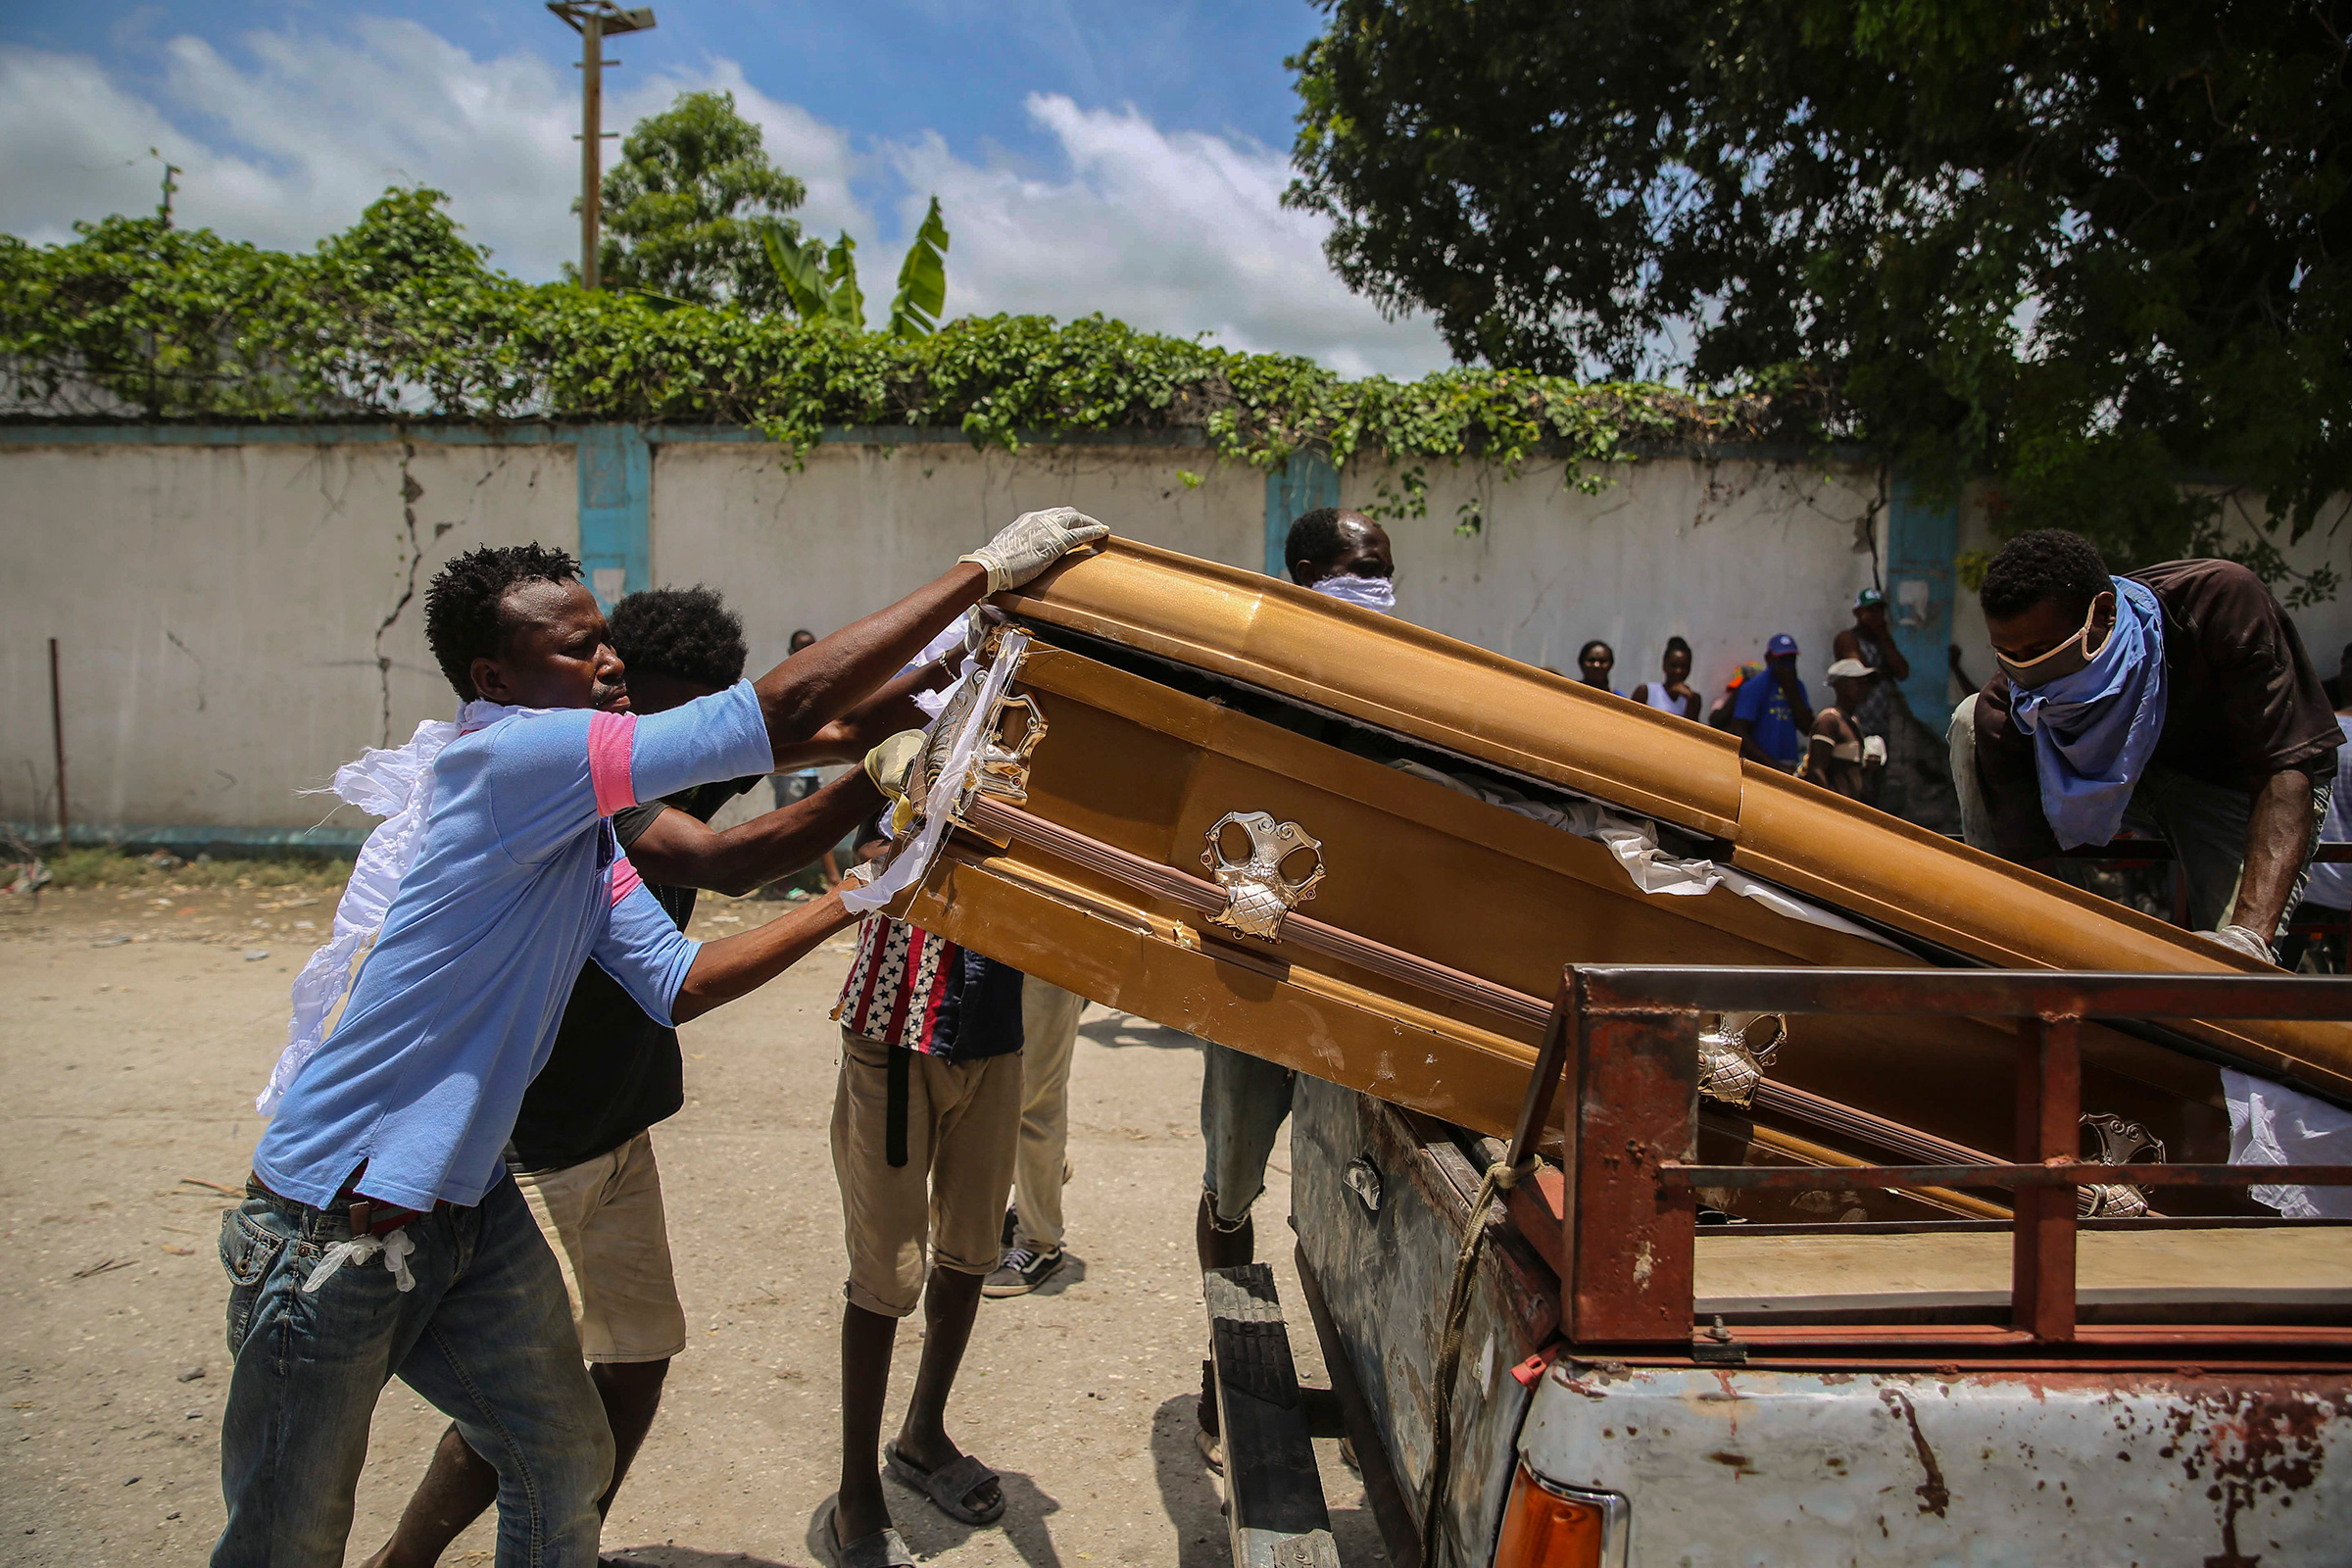 Men load the coffin containing the remains of Francois Elmay, after recovering his body from the rubble of a home, in Les Cayes on Aug. 18.